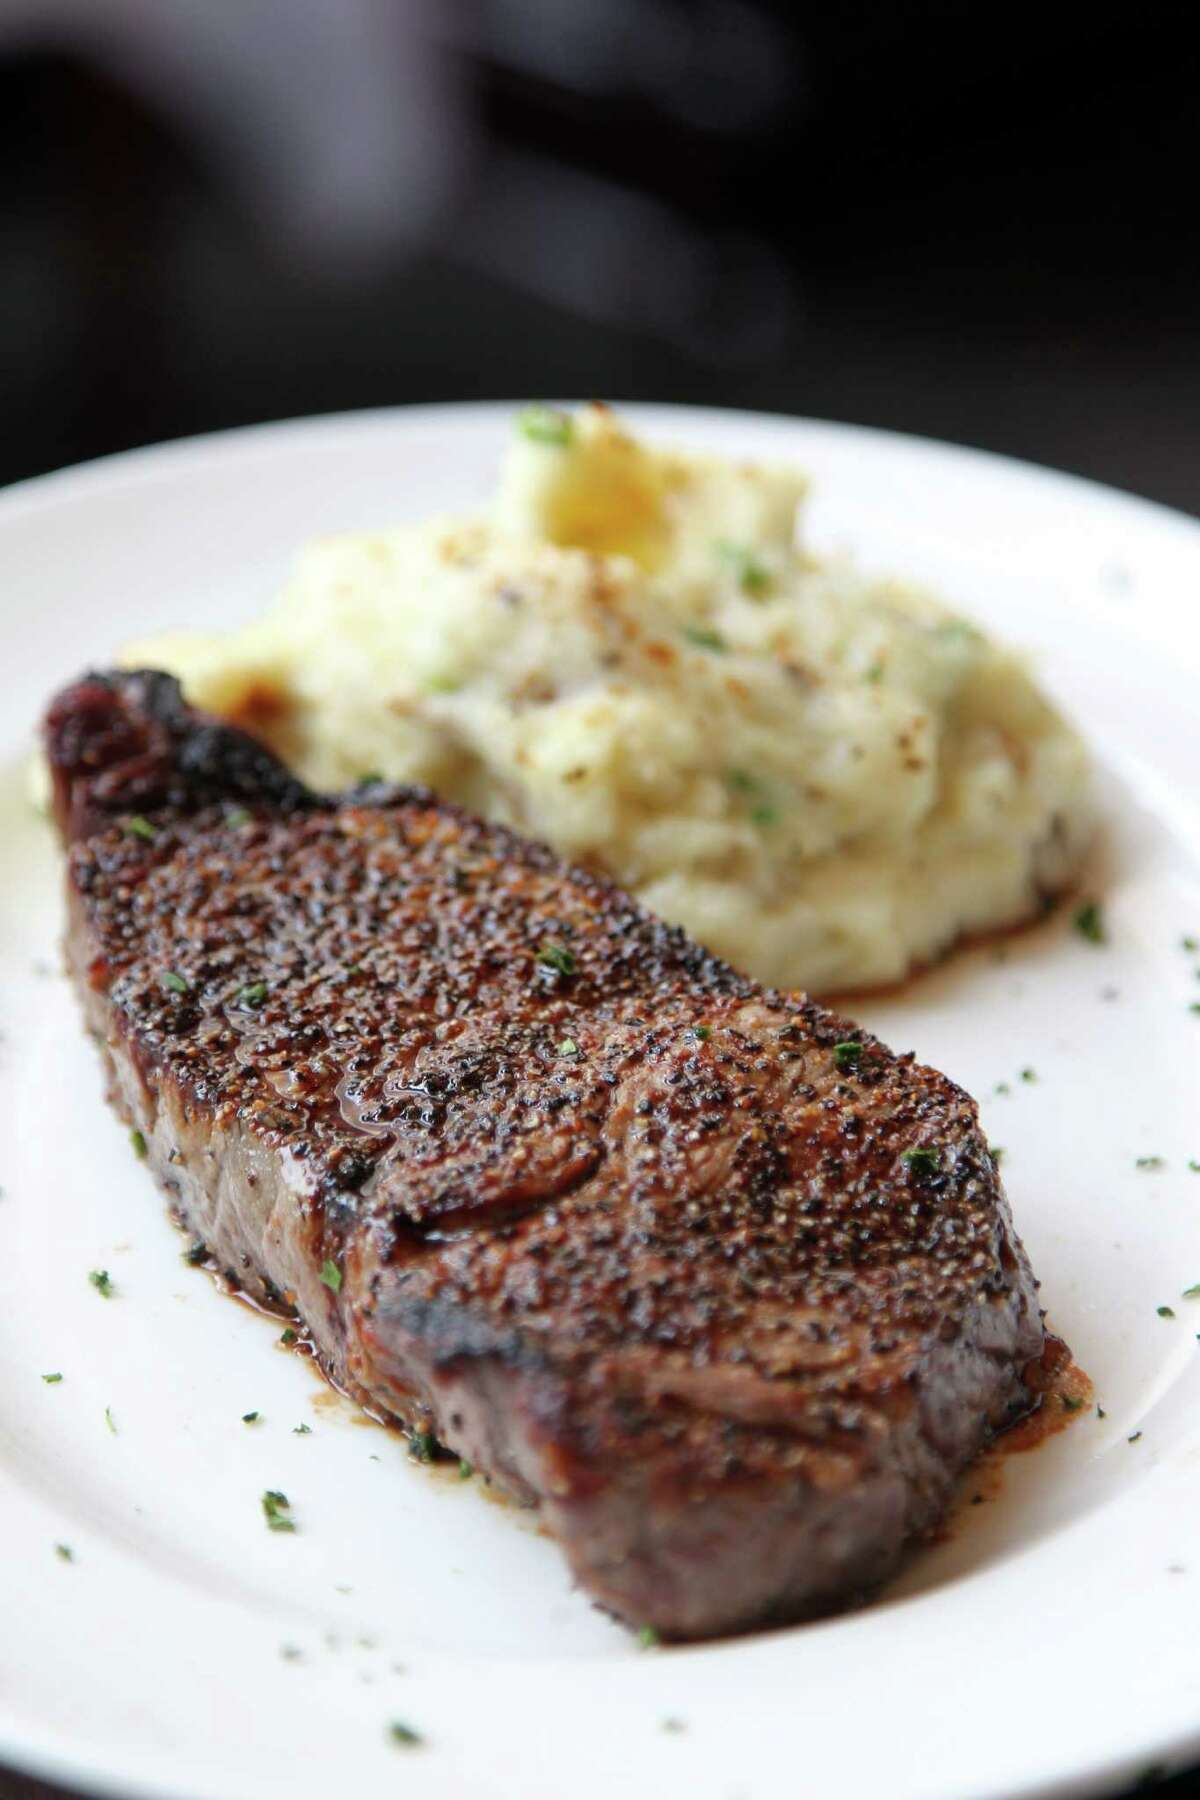 USDA Prime New York Strip and Chateau Potatoes is one of three dishes served at Del Frisco's during Houston's Restaurant Week on Saturday, July 27, 2013, in Houston. ( Mayra Beltran / Houston Chronicle )